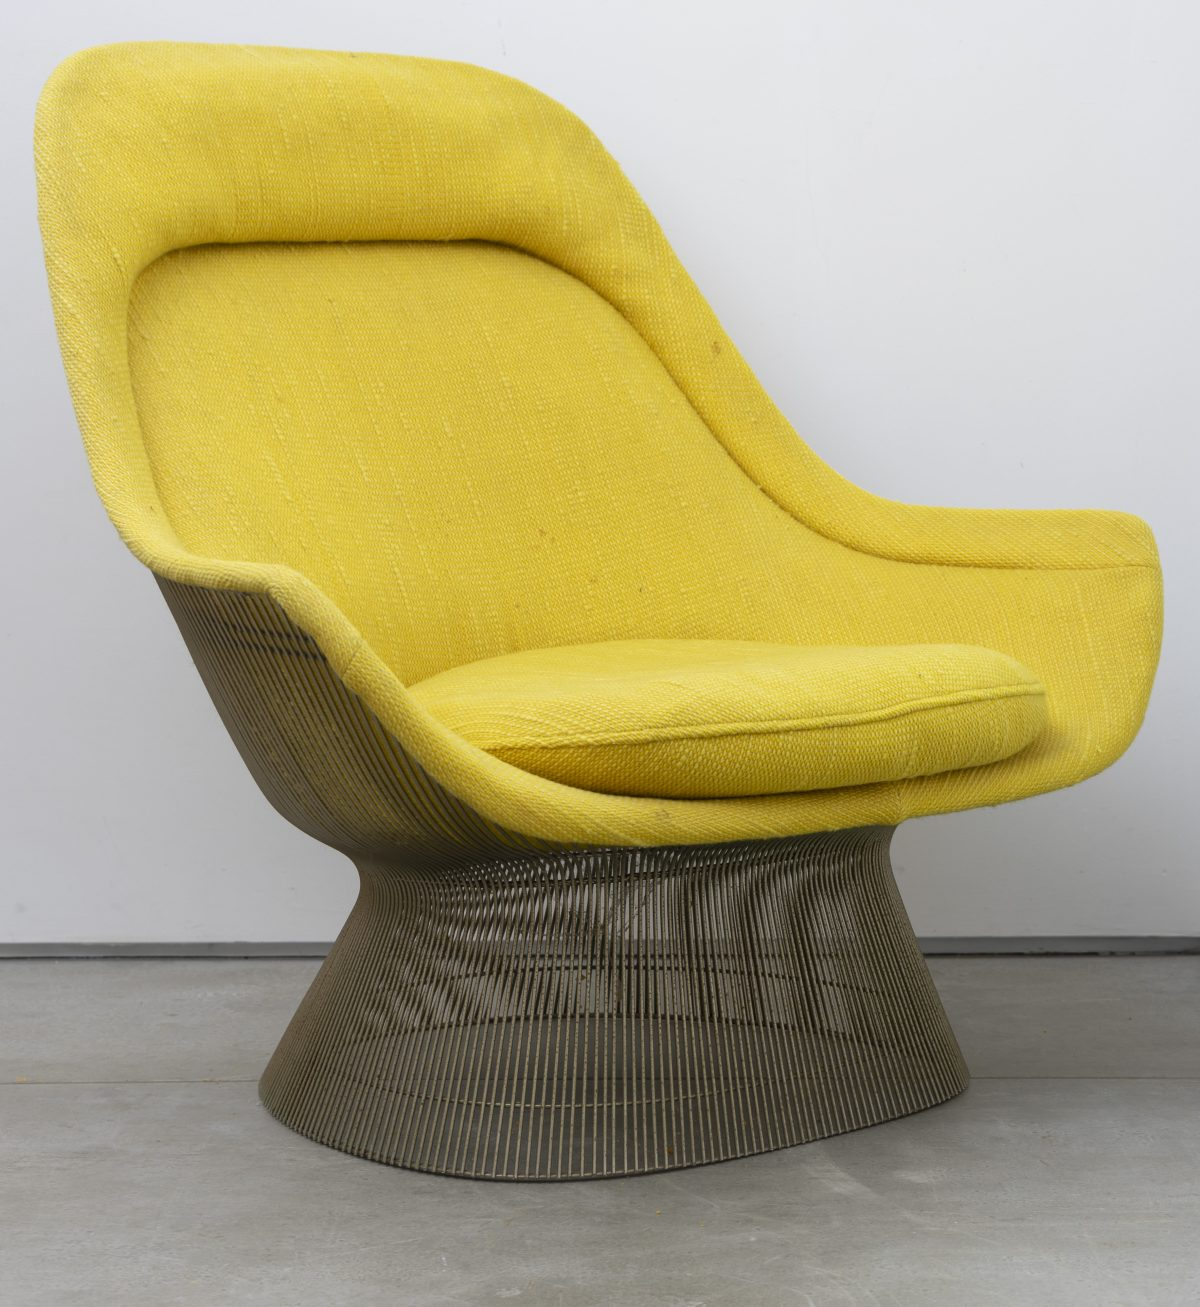 Warren Platner for Knoll - Pair of Lounge Chairs and Ottoman